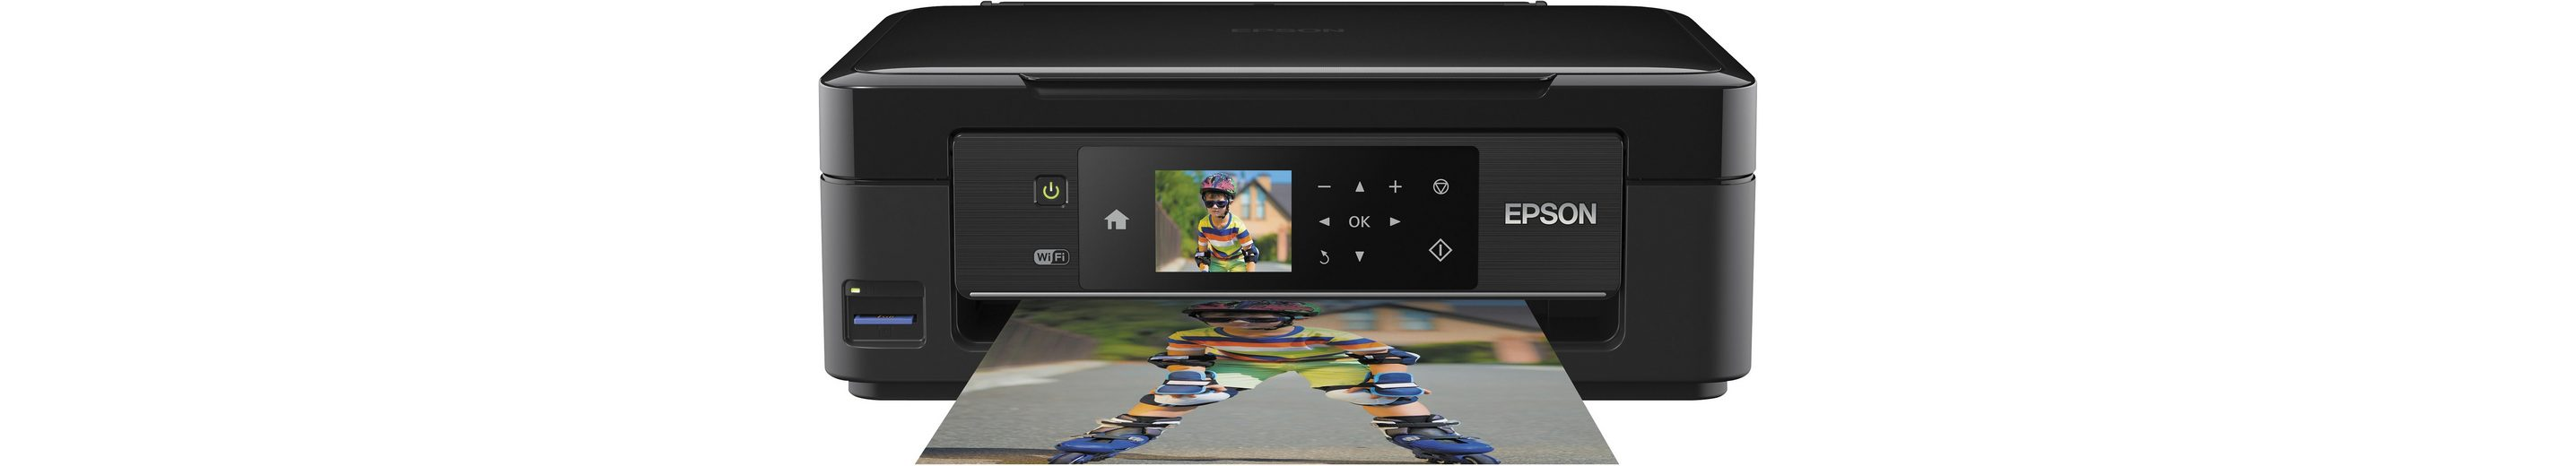 Epson Expression Home XP 432 Multifunktionsdrucker